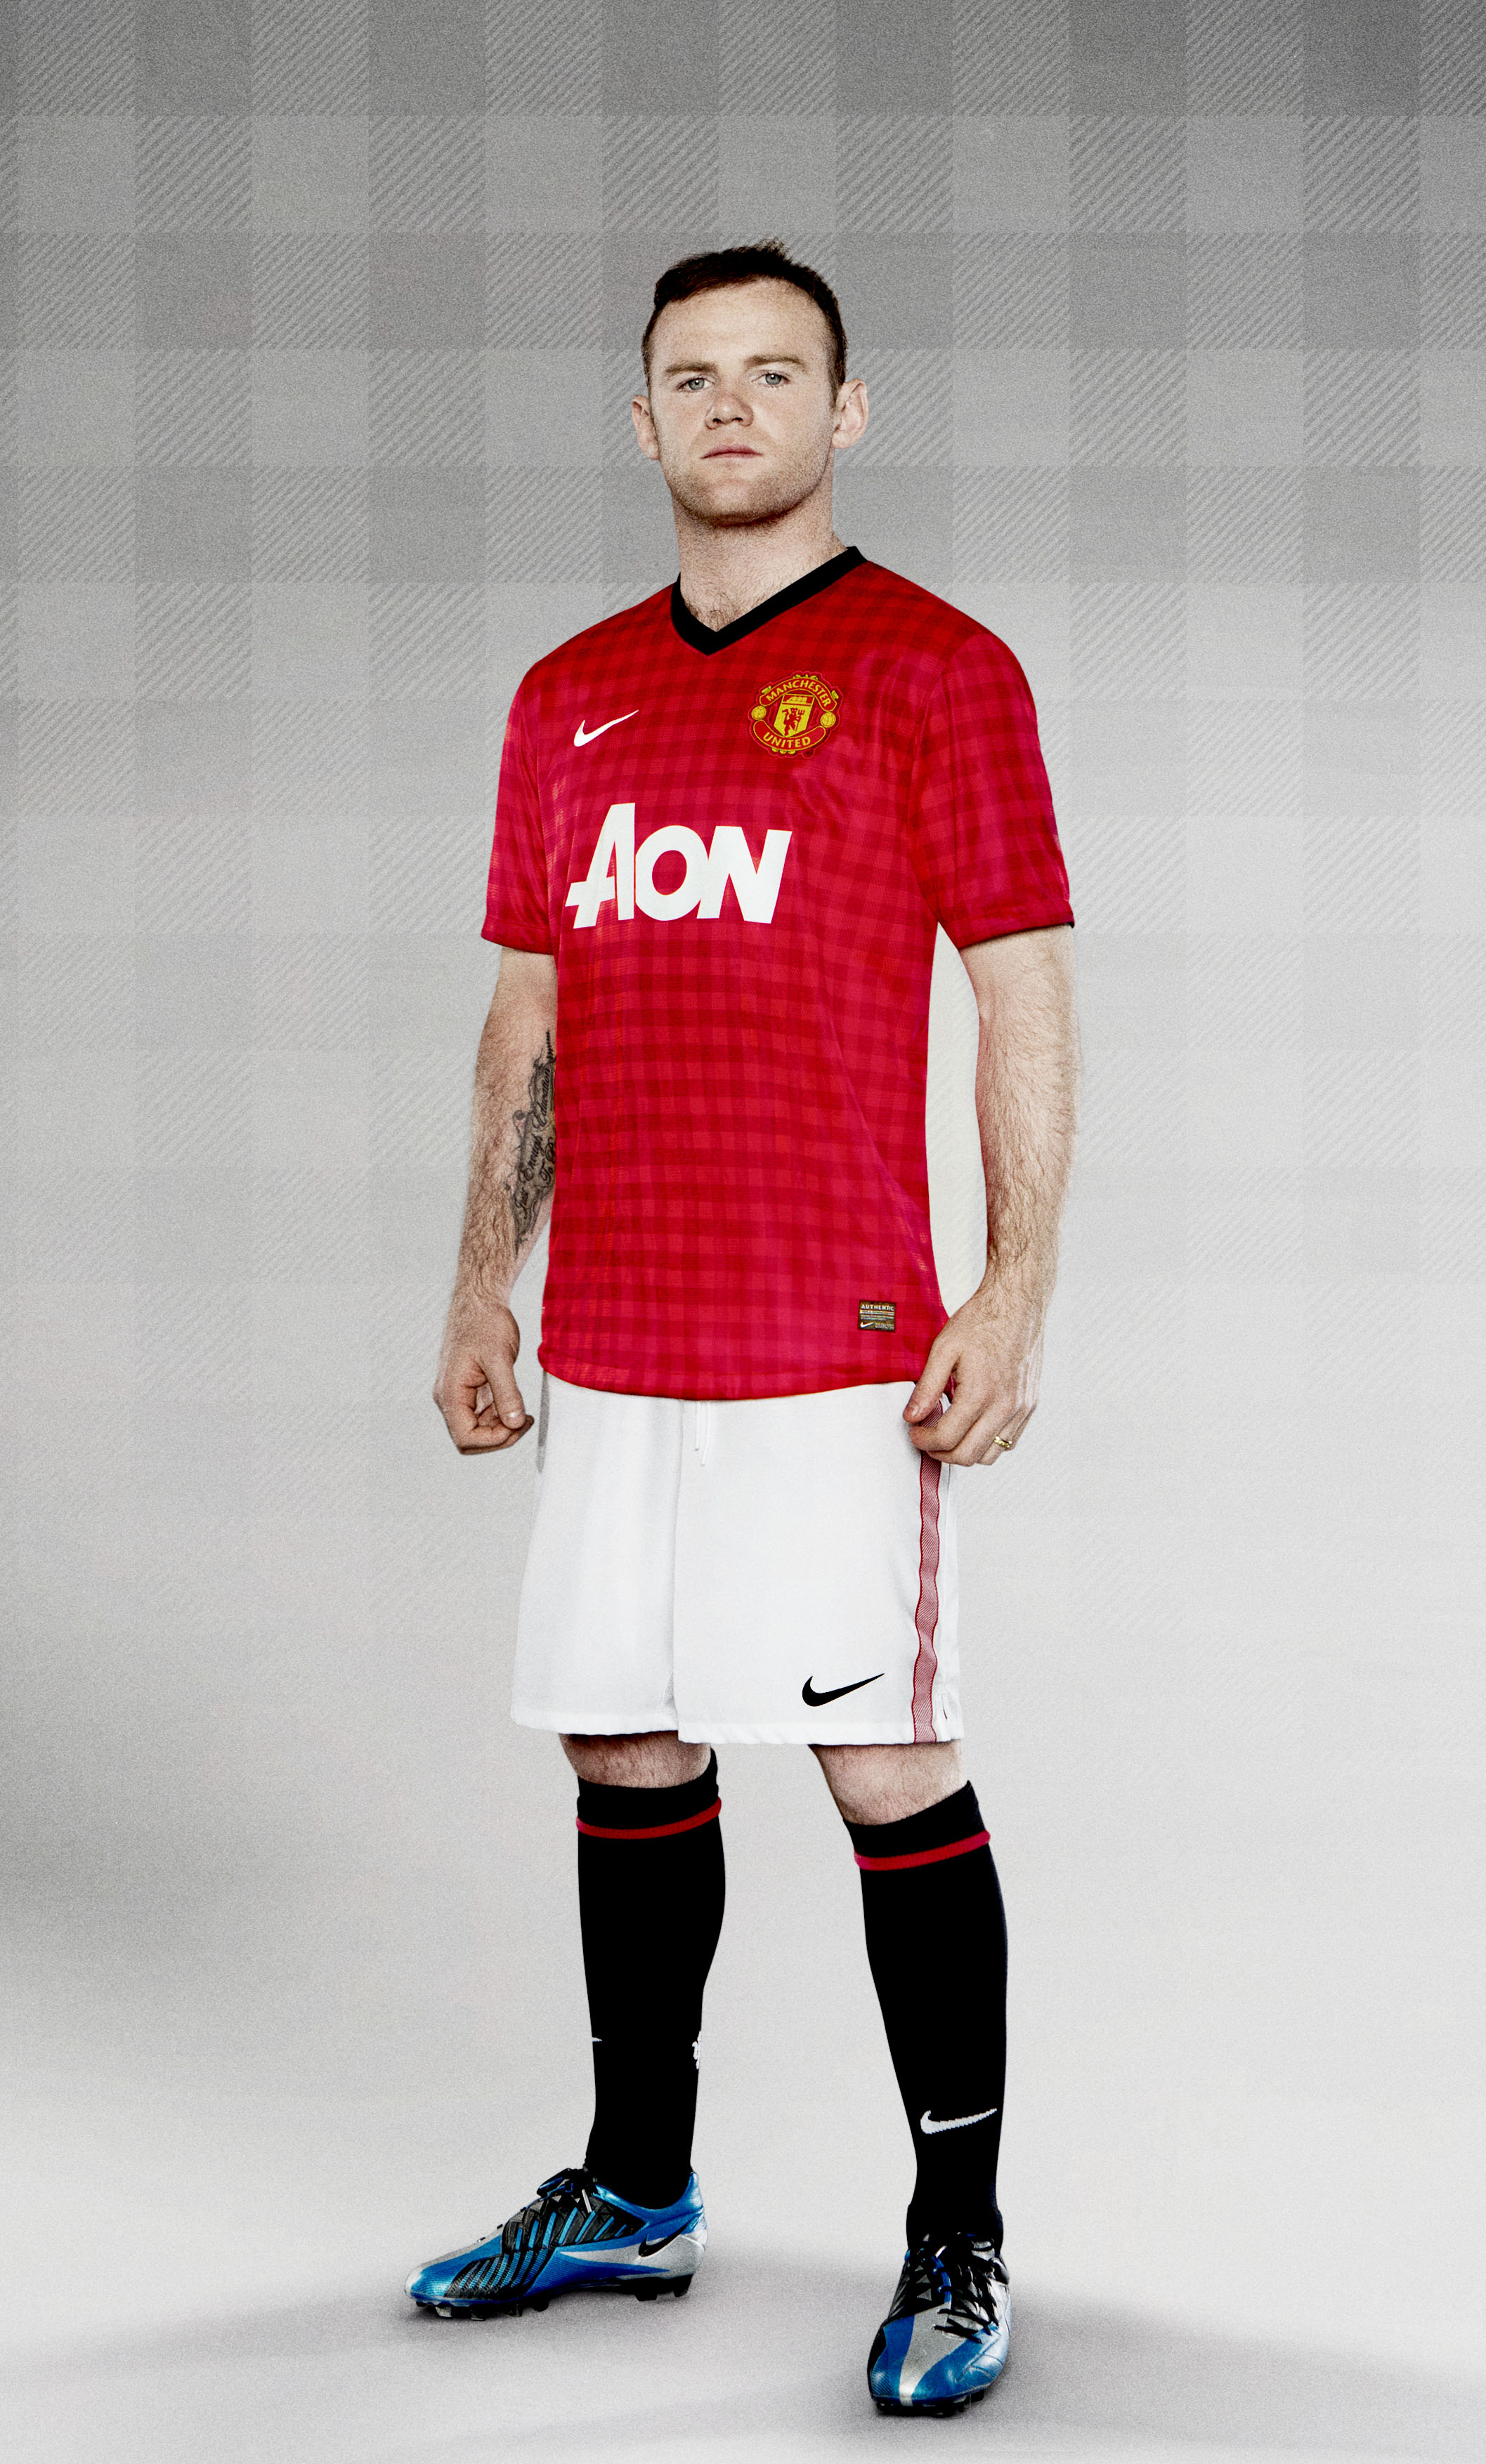 383dcb5d1ae Football kit release  Nike unveils Manchester United home kit for ...